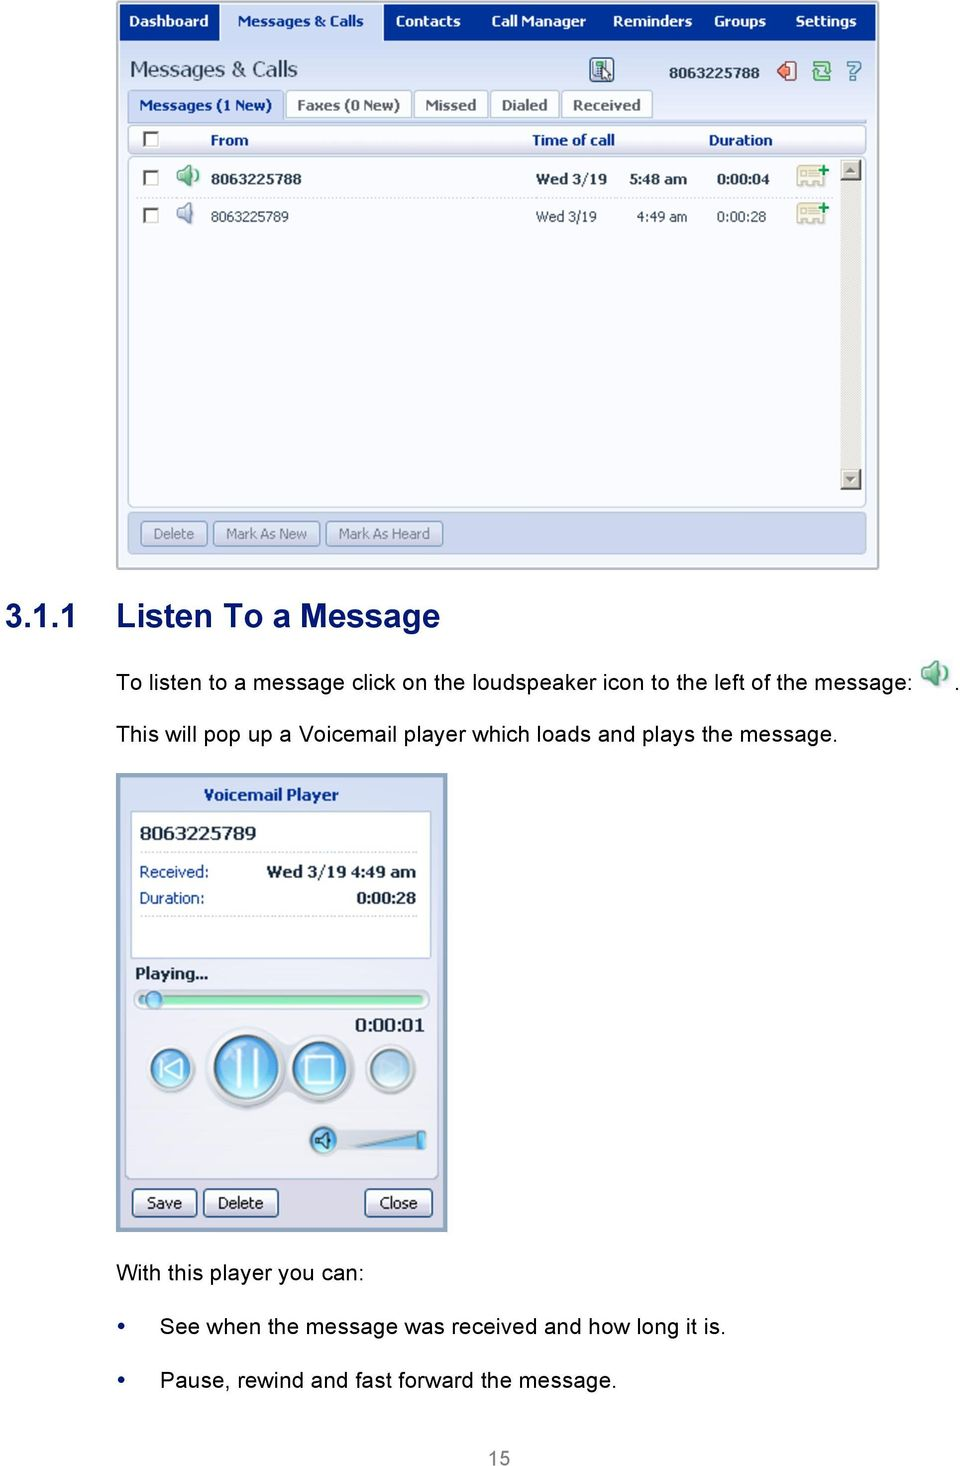 This will pop up a Voicemail player which loads and plays the message.